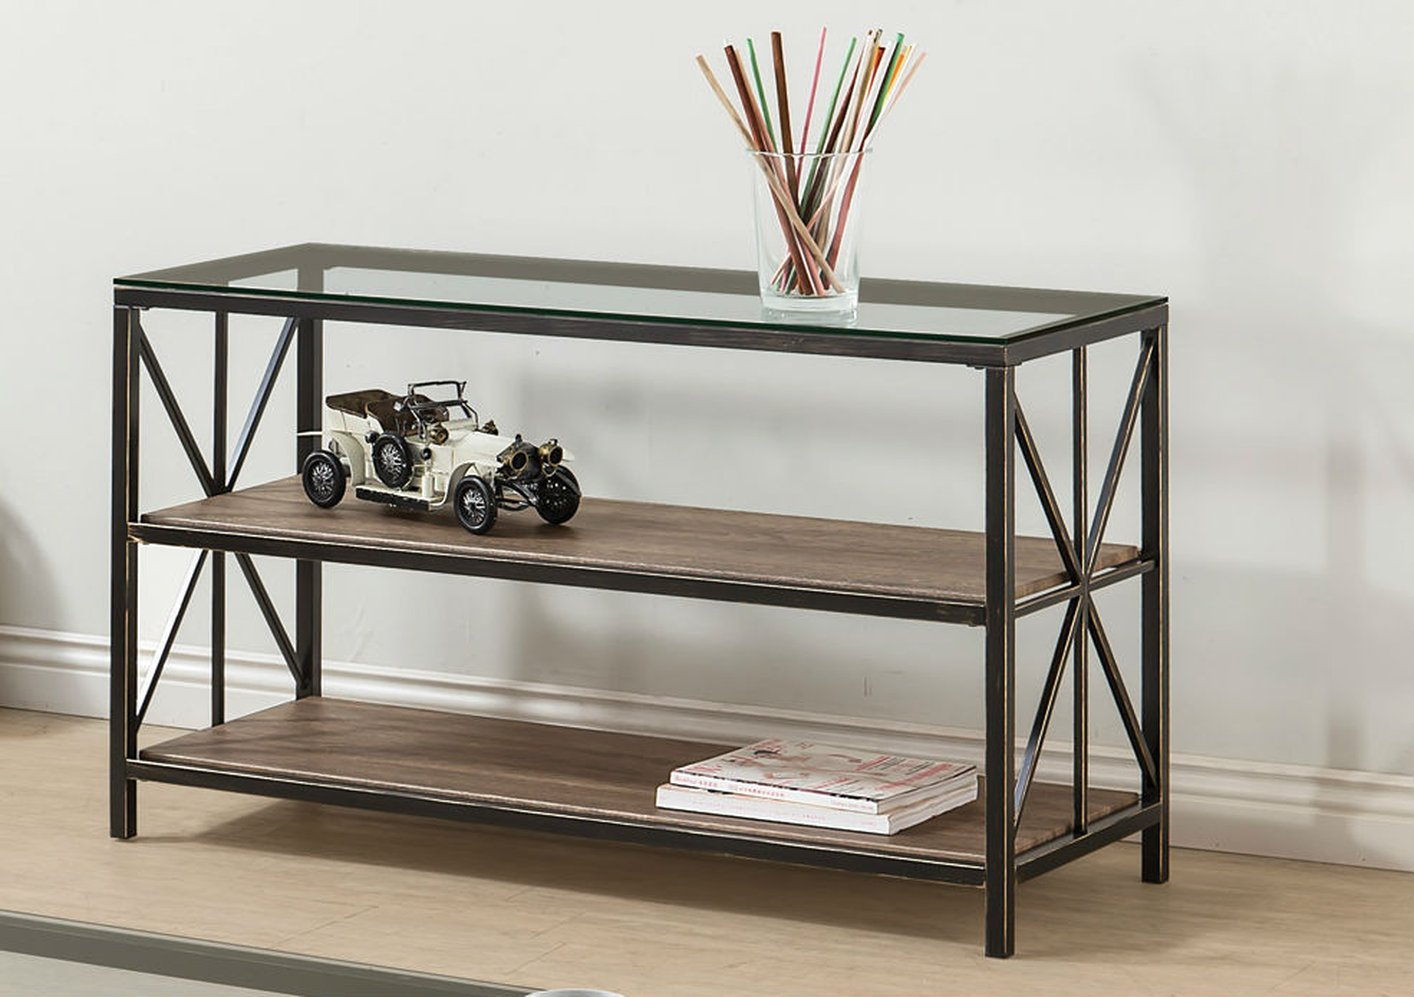 Glass Sofa Table avondale black glass sofa table - steal-a-sofa furniture outlet